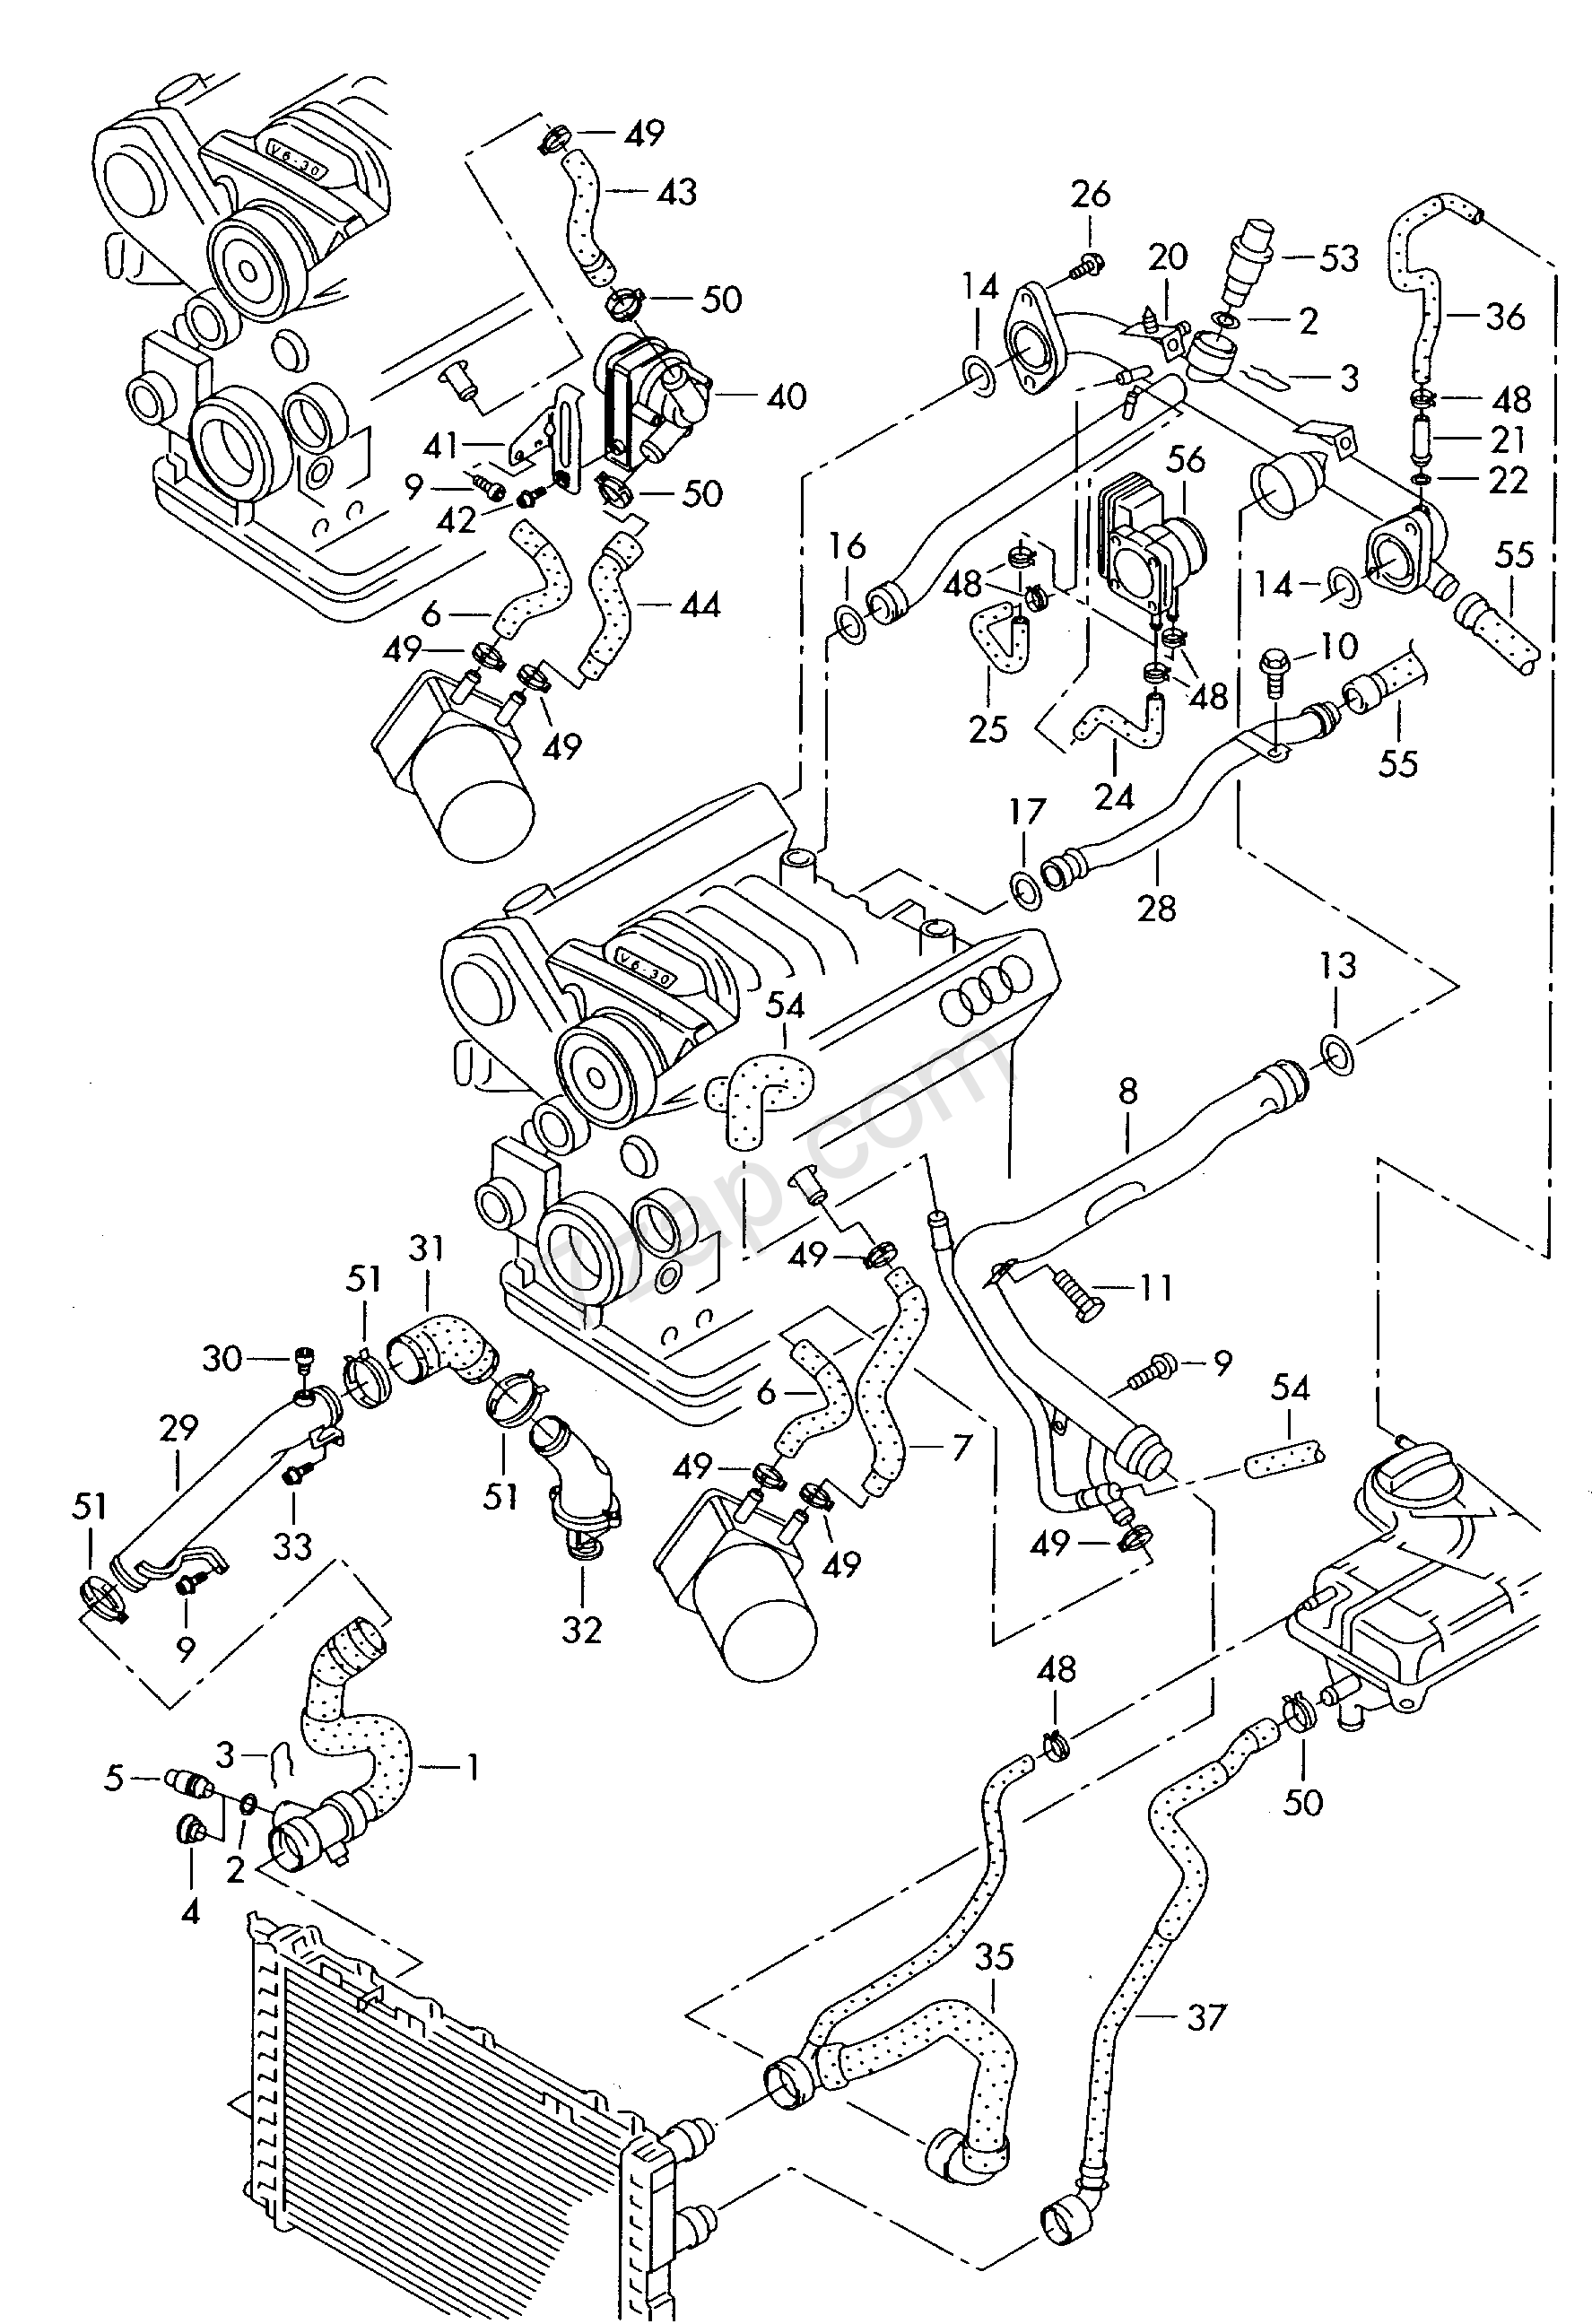 coolant cooling system audi a4  s4 cabrio   qu   aa4c  2003